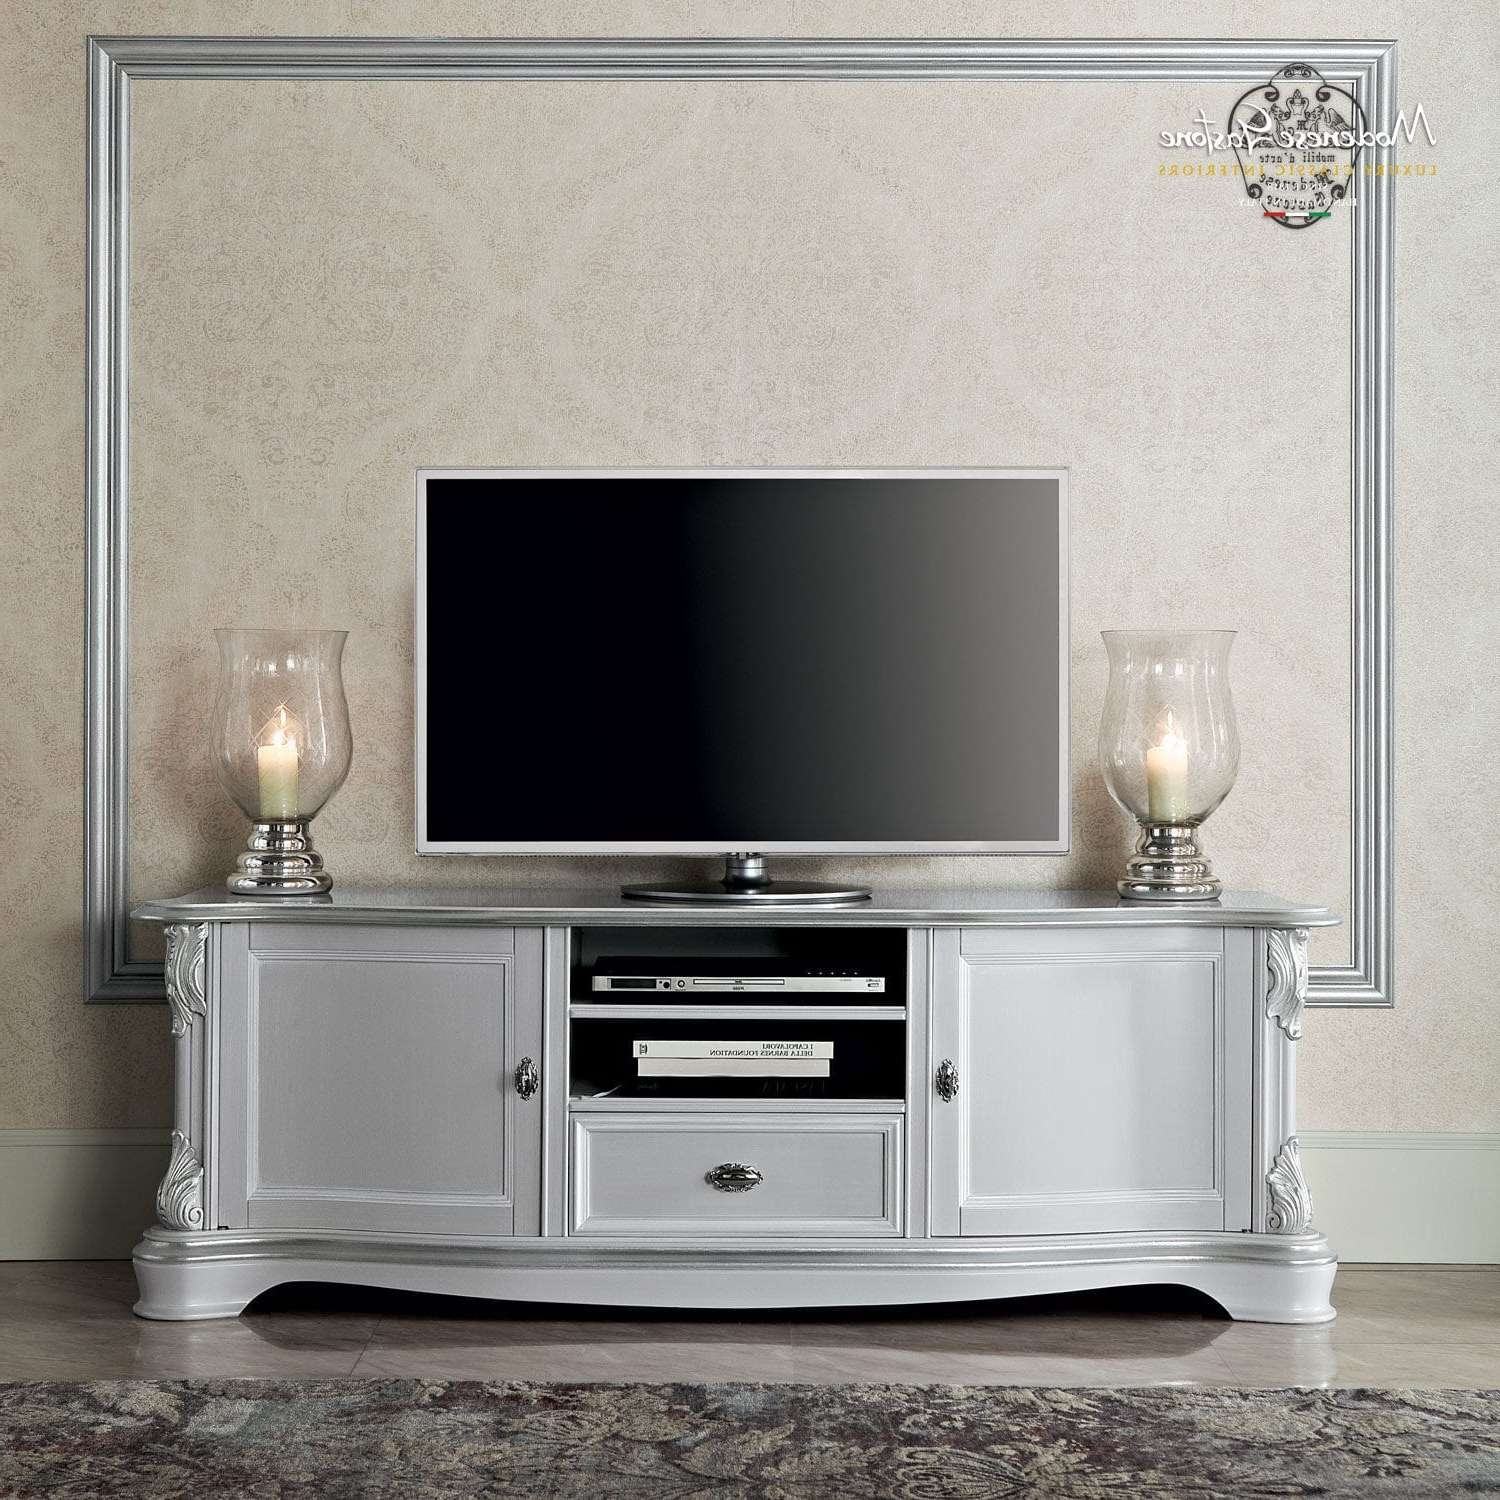 Classic Tv Cabinet / Solid Wood – Bella Vita – Modenese Gastone Inside Luxury Tv Stands (View 13 of 15)